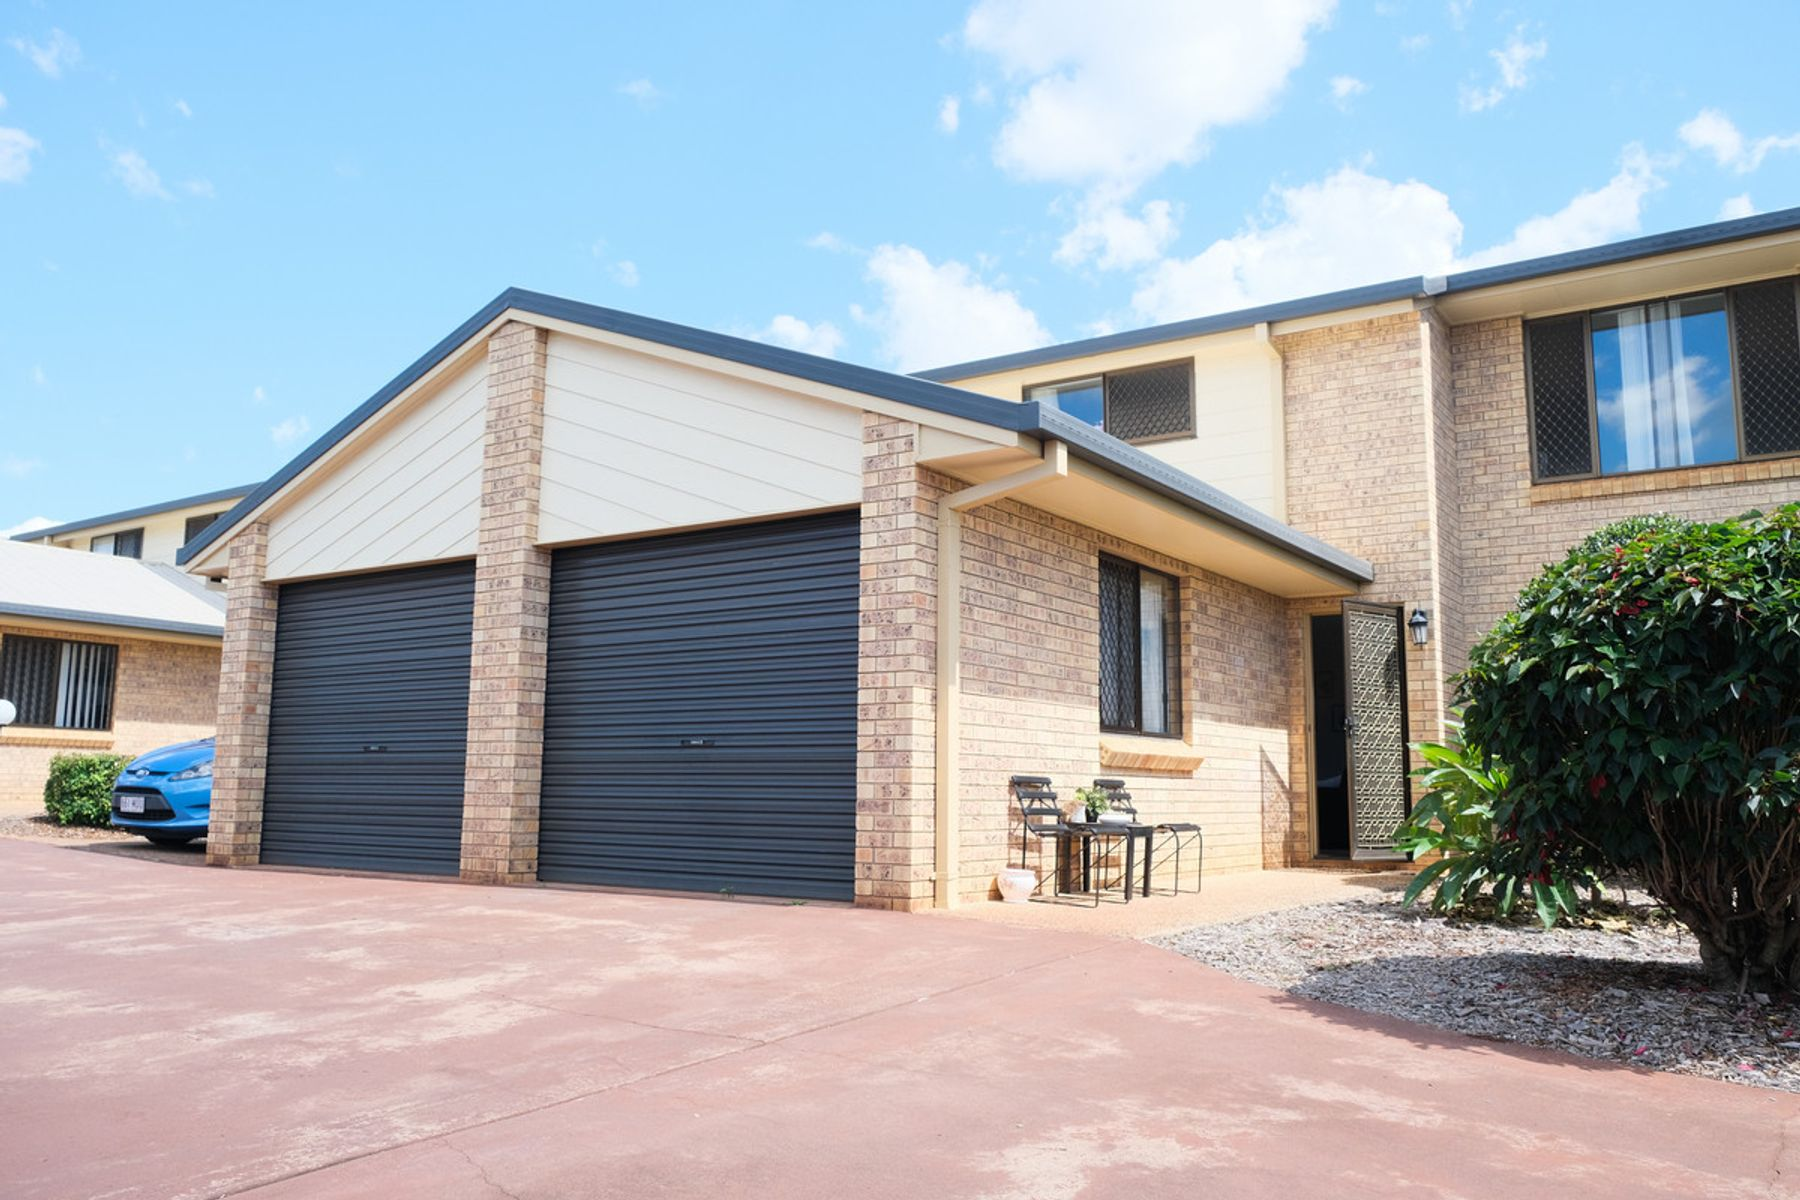 5/56 Gordon Avenue, Newtown, QLD 4350